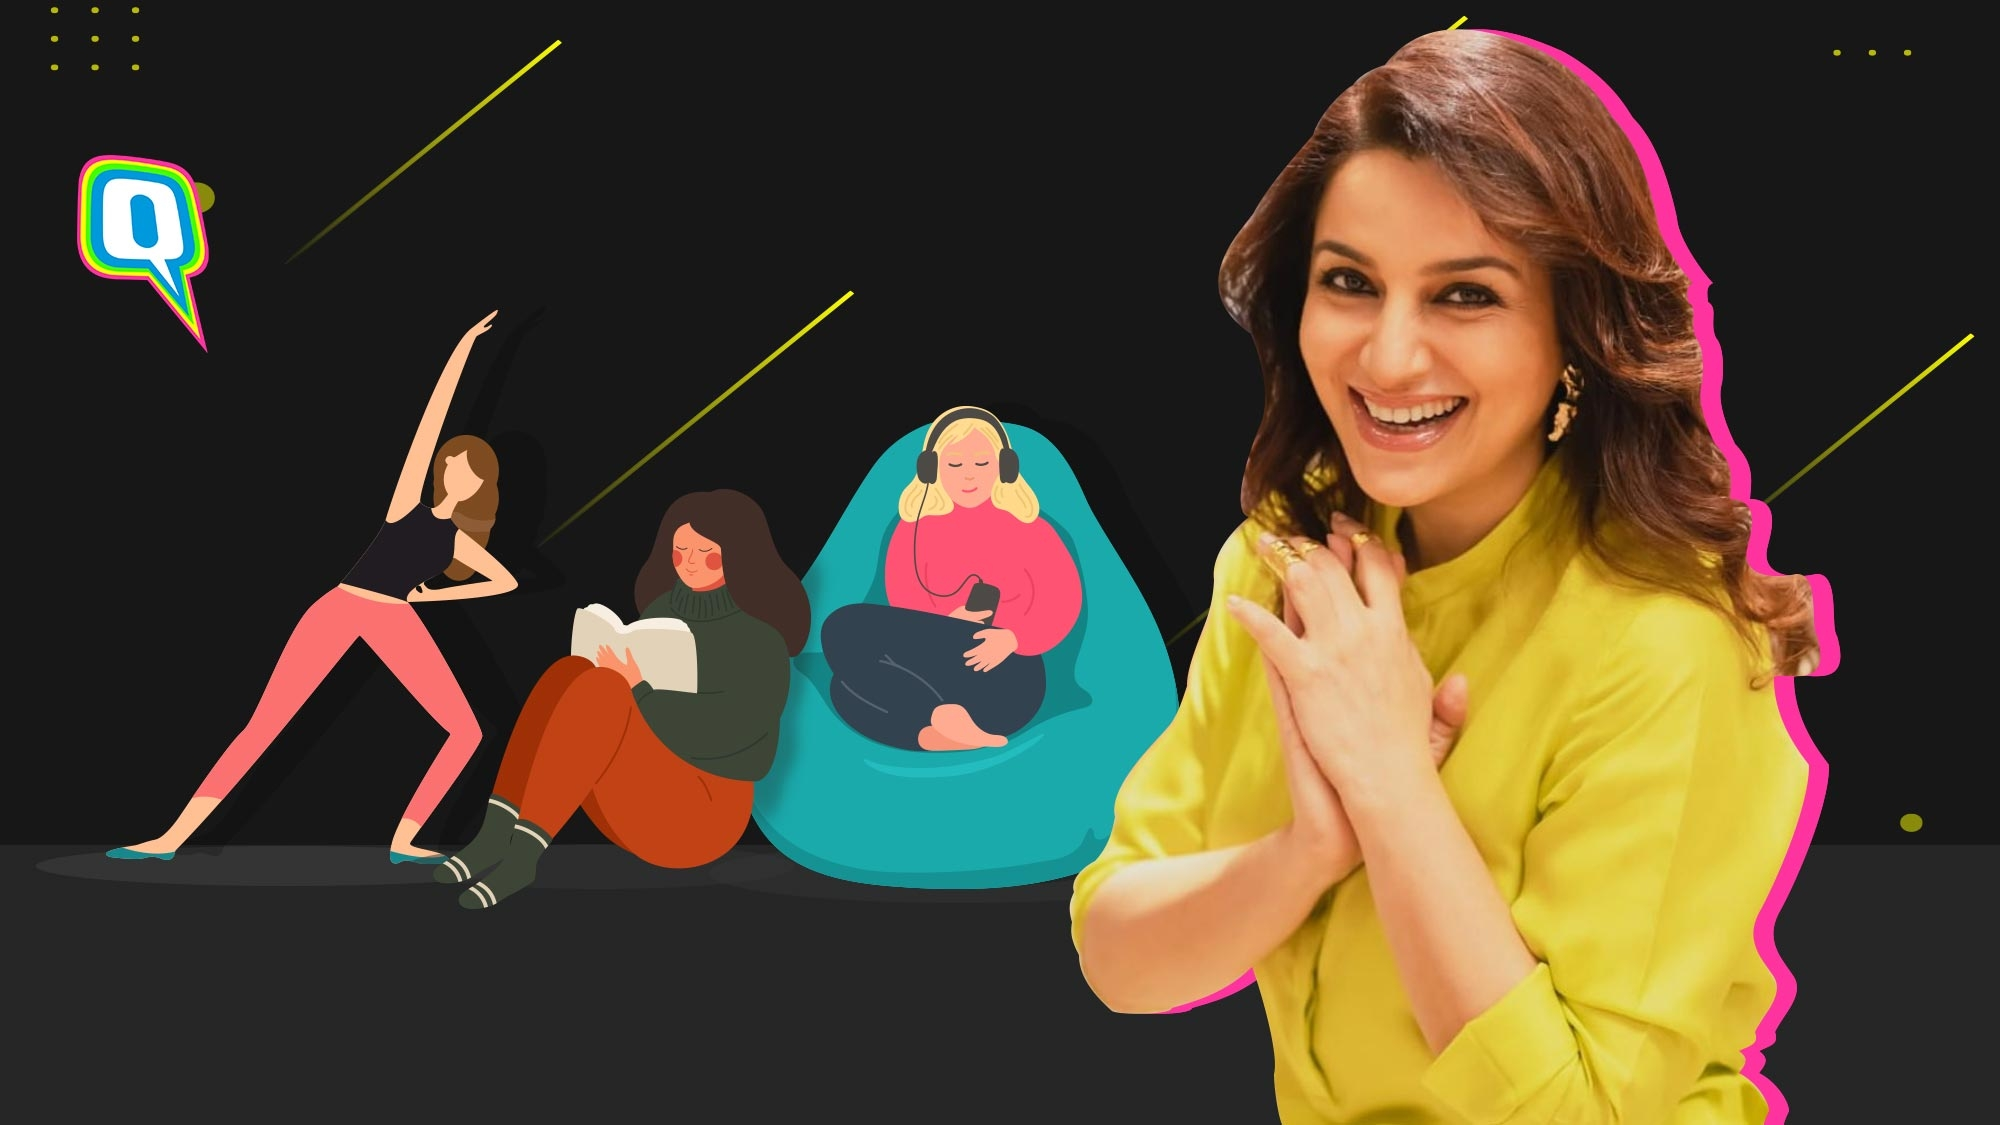 Tisca Chopra Has Tips on How You Can Make the Most of Lockdown